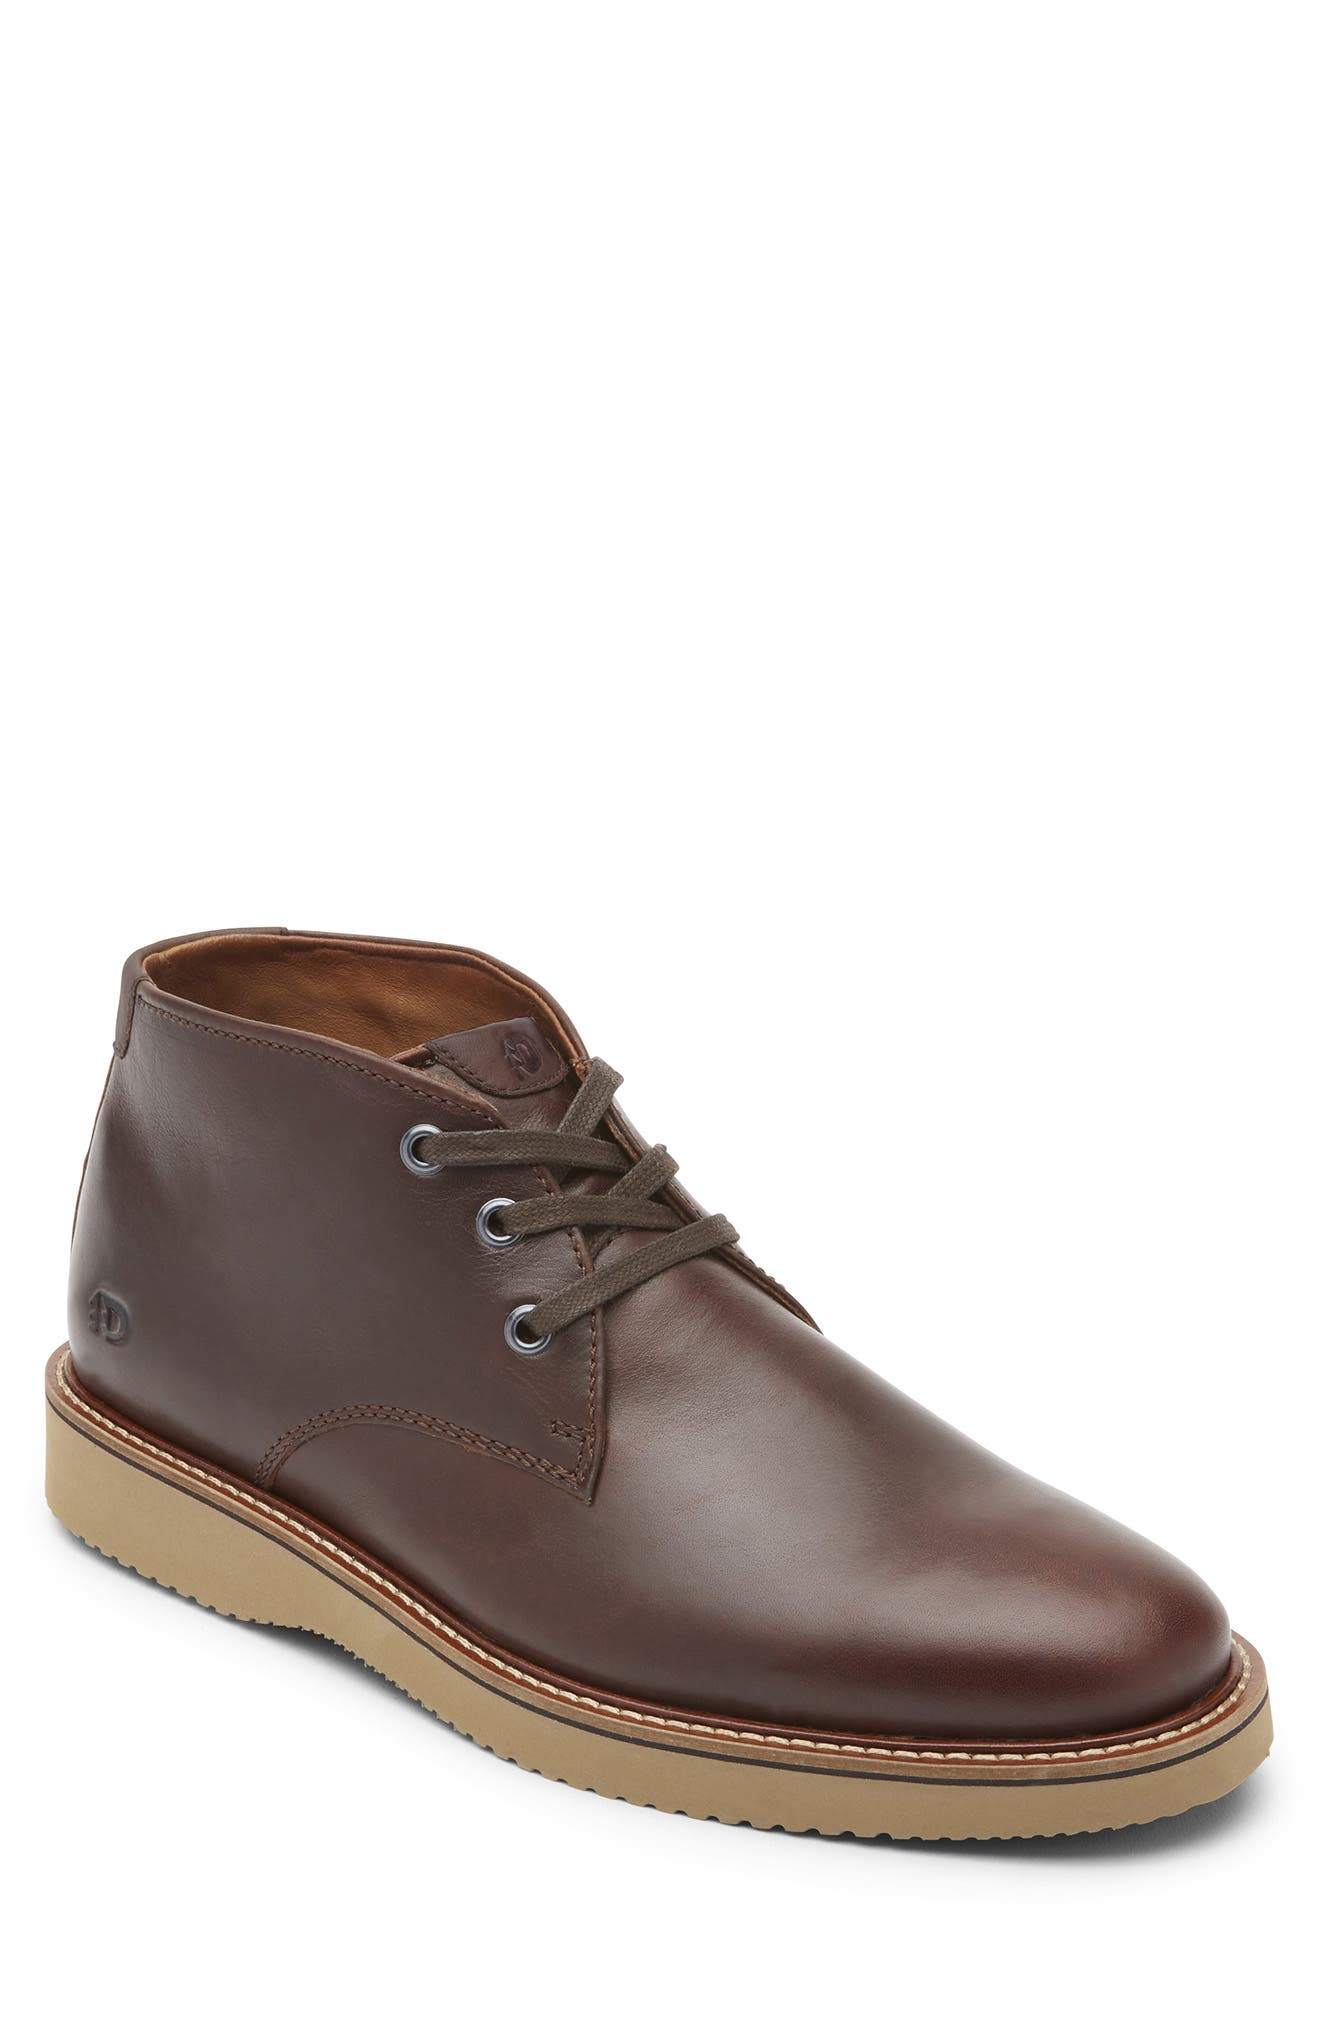 Clyde Leather Chukka Boot